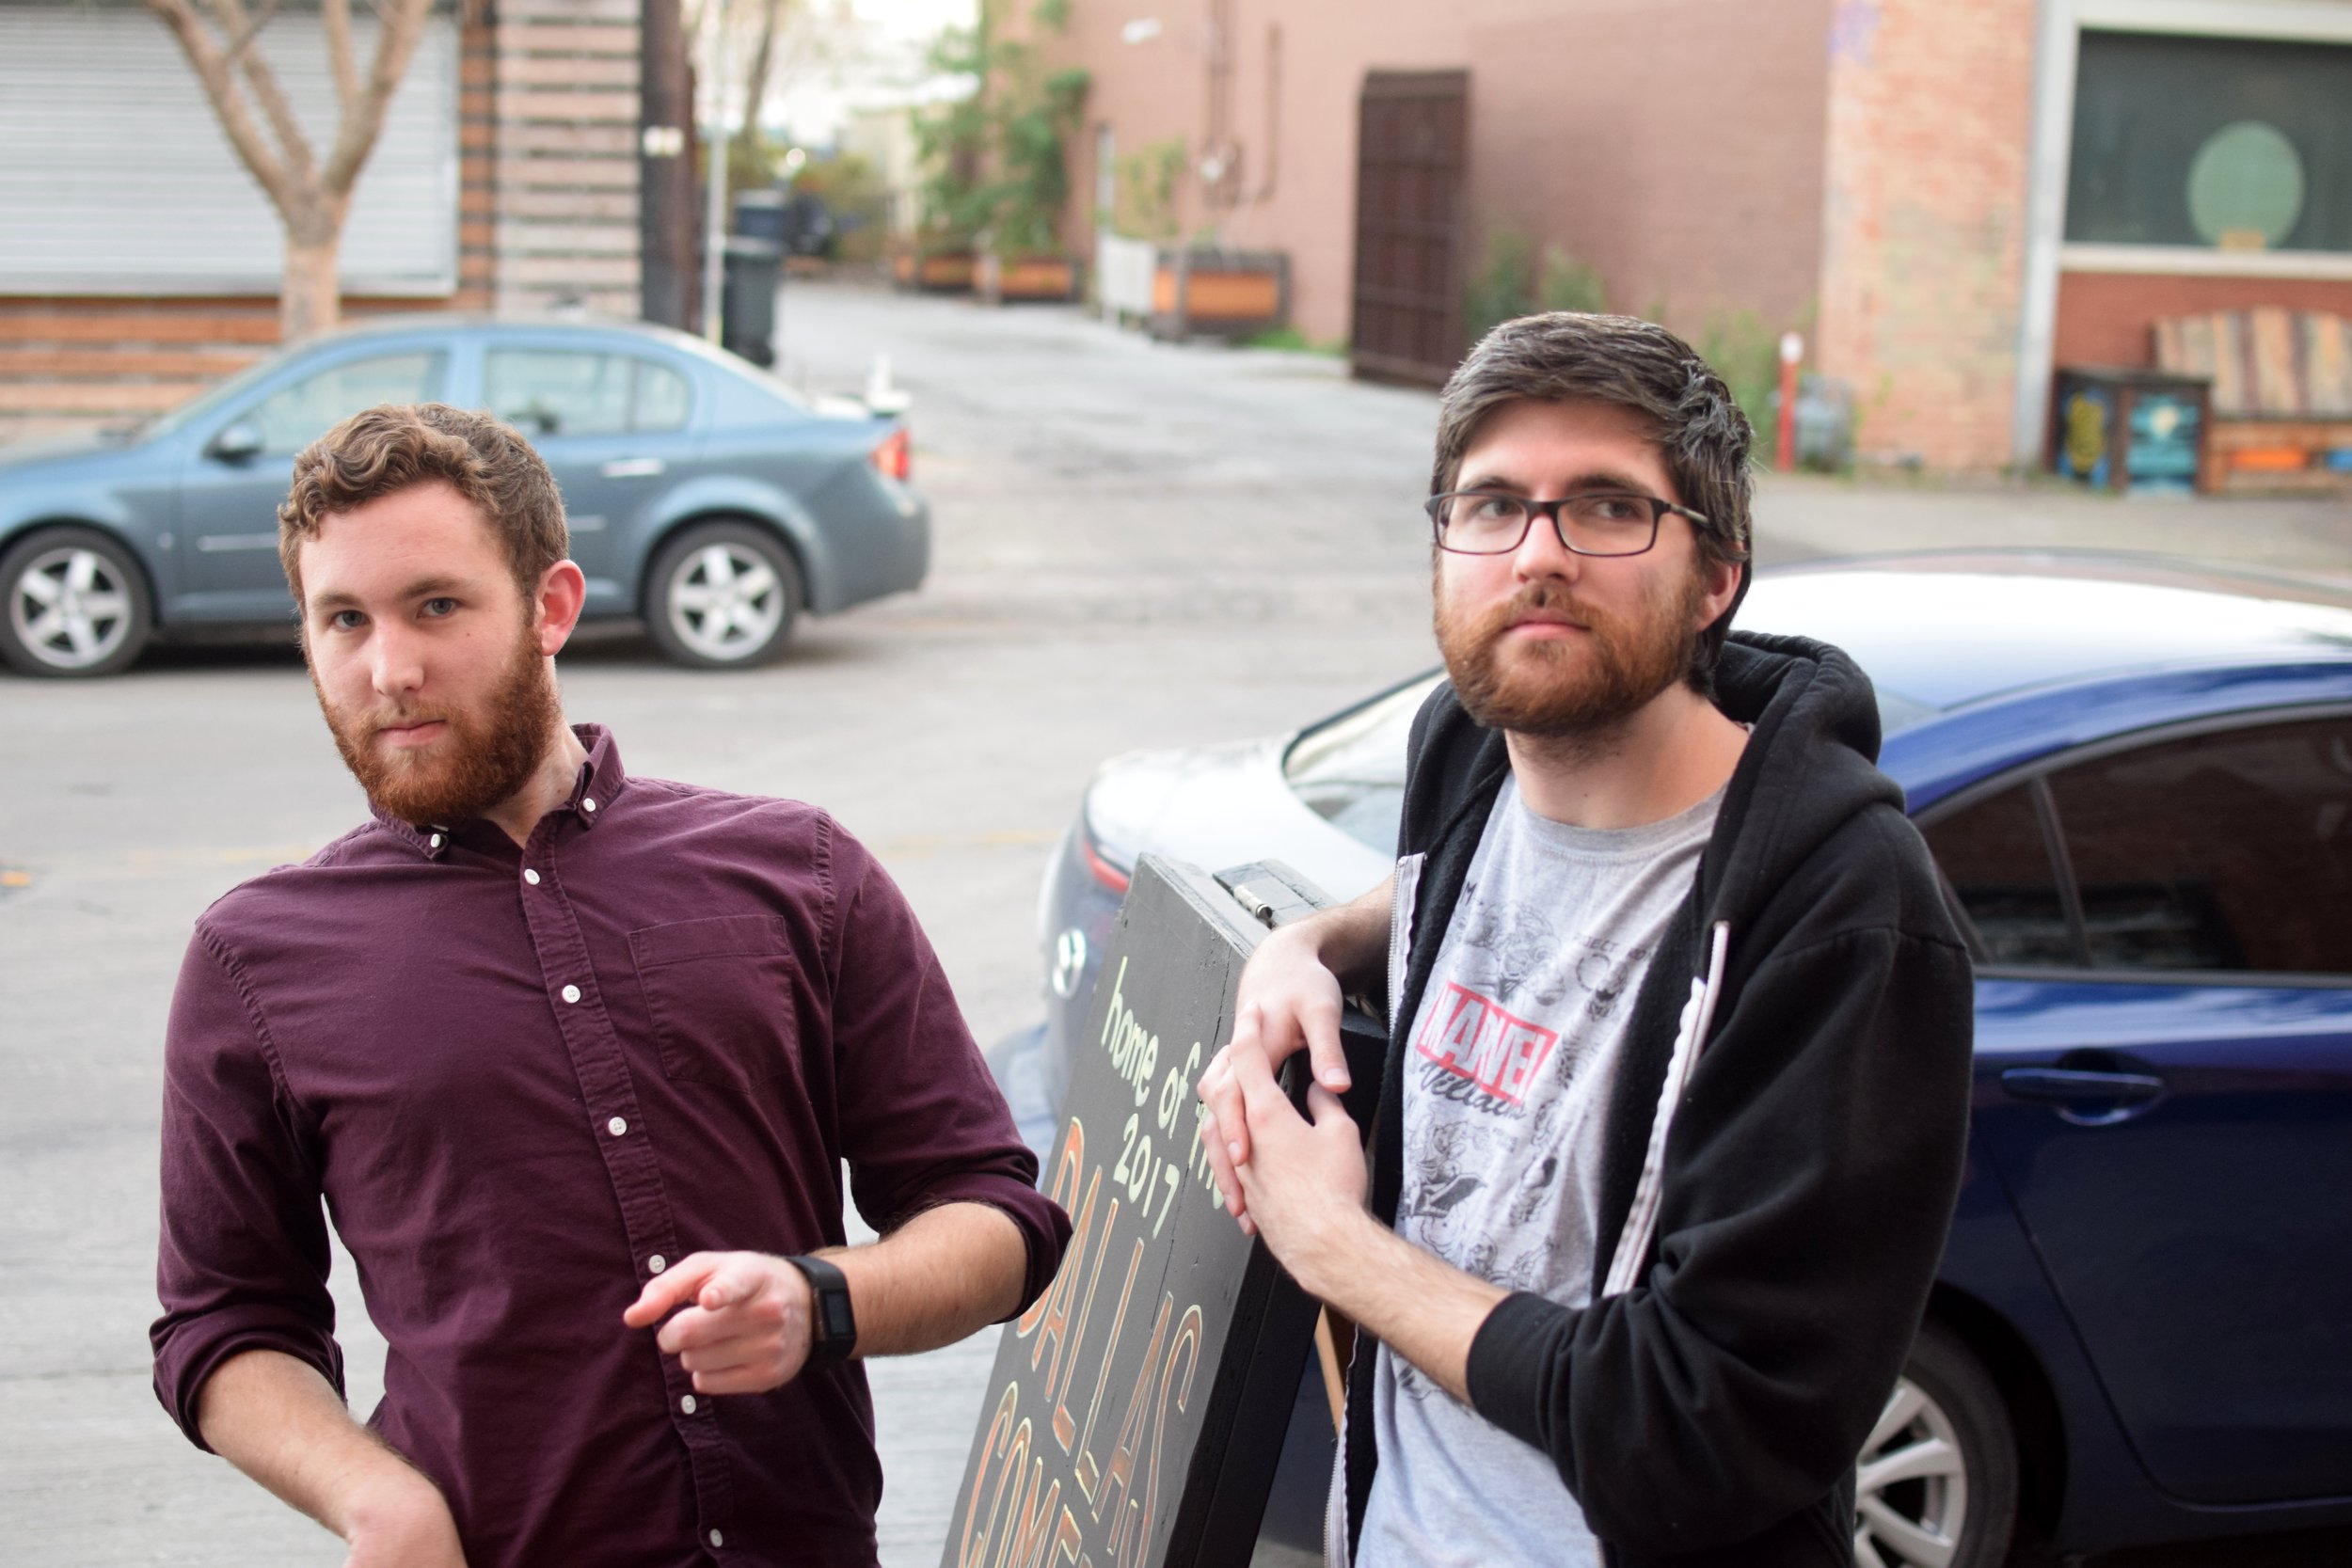 Logan (left) with an unknown human (right) Photo Credit: Jason Hensel